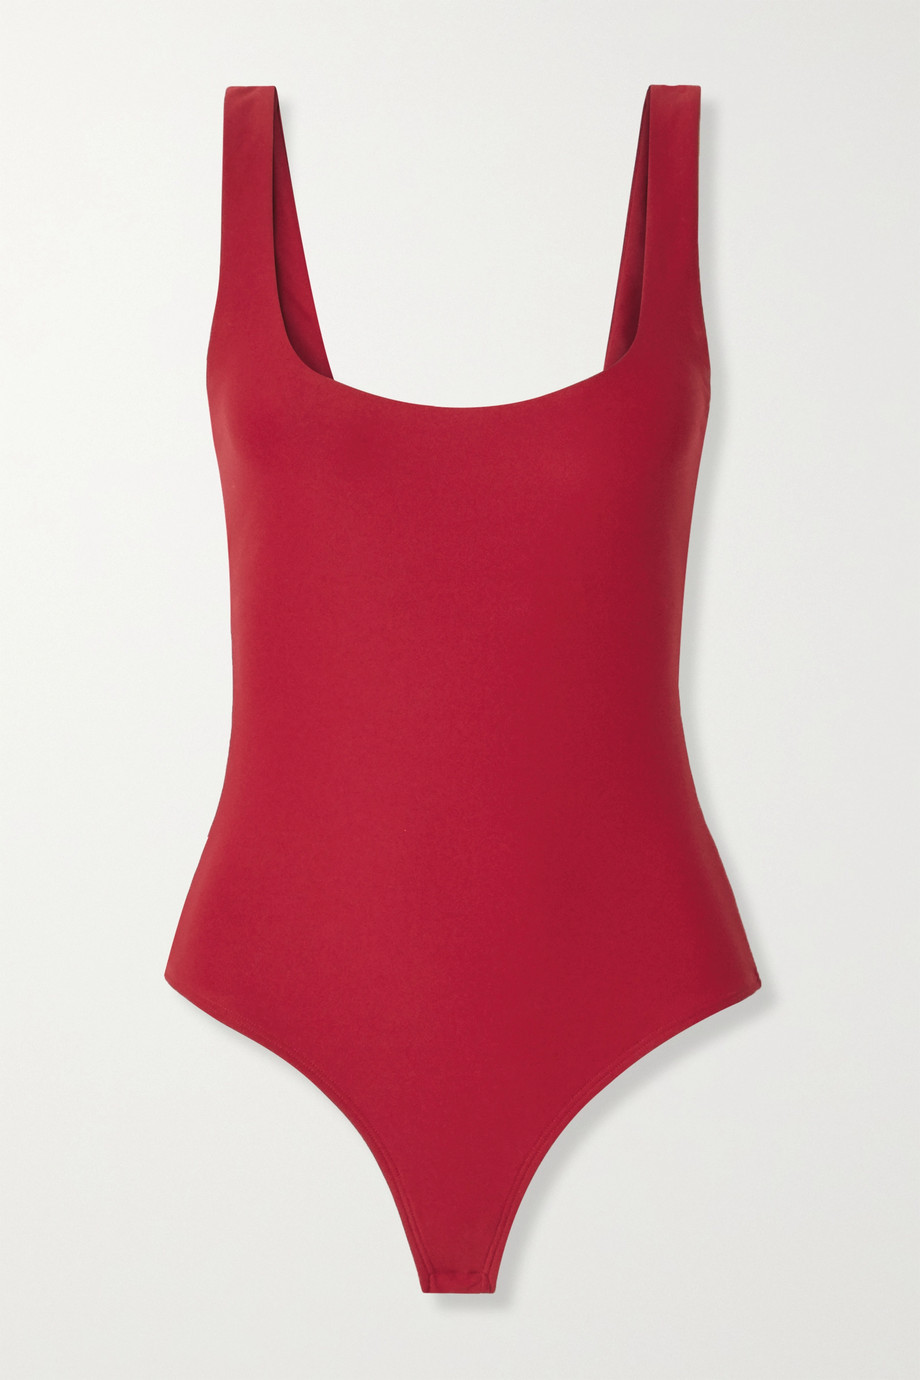 Alix NYC Mott stretch-jersey thong bodysuit